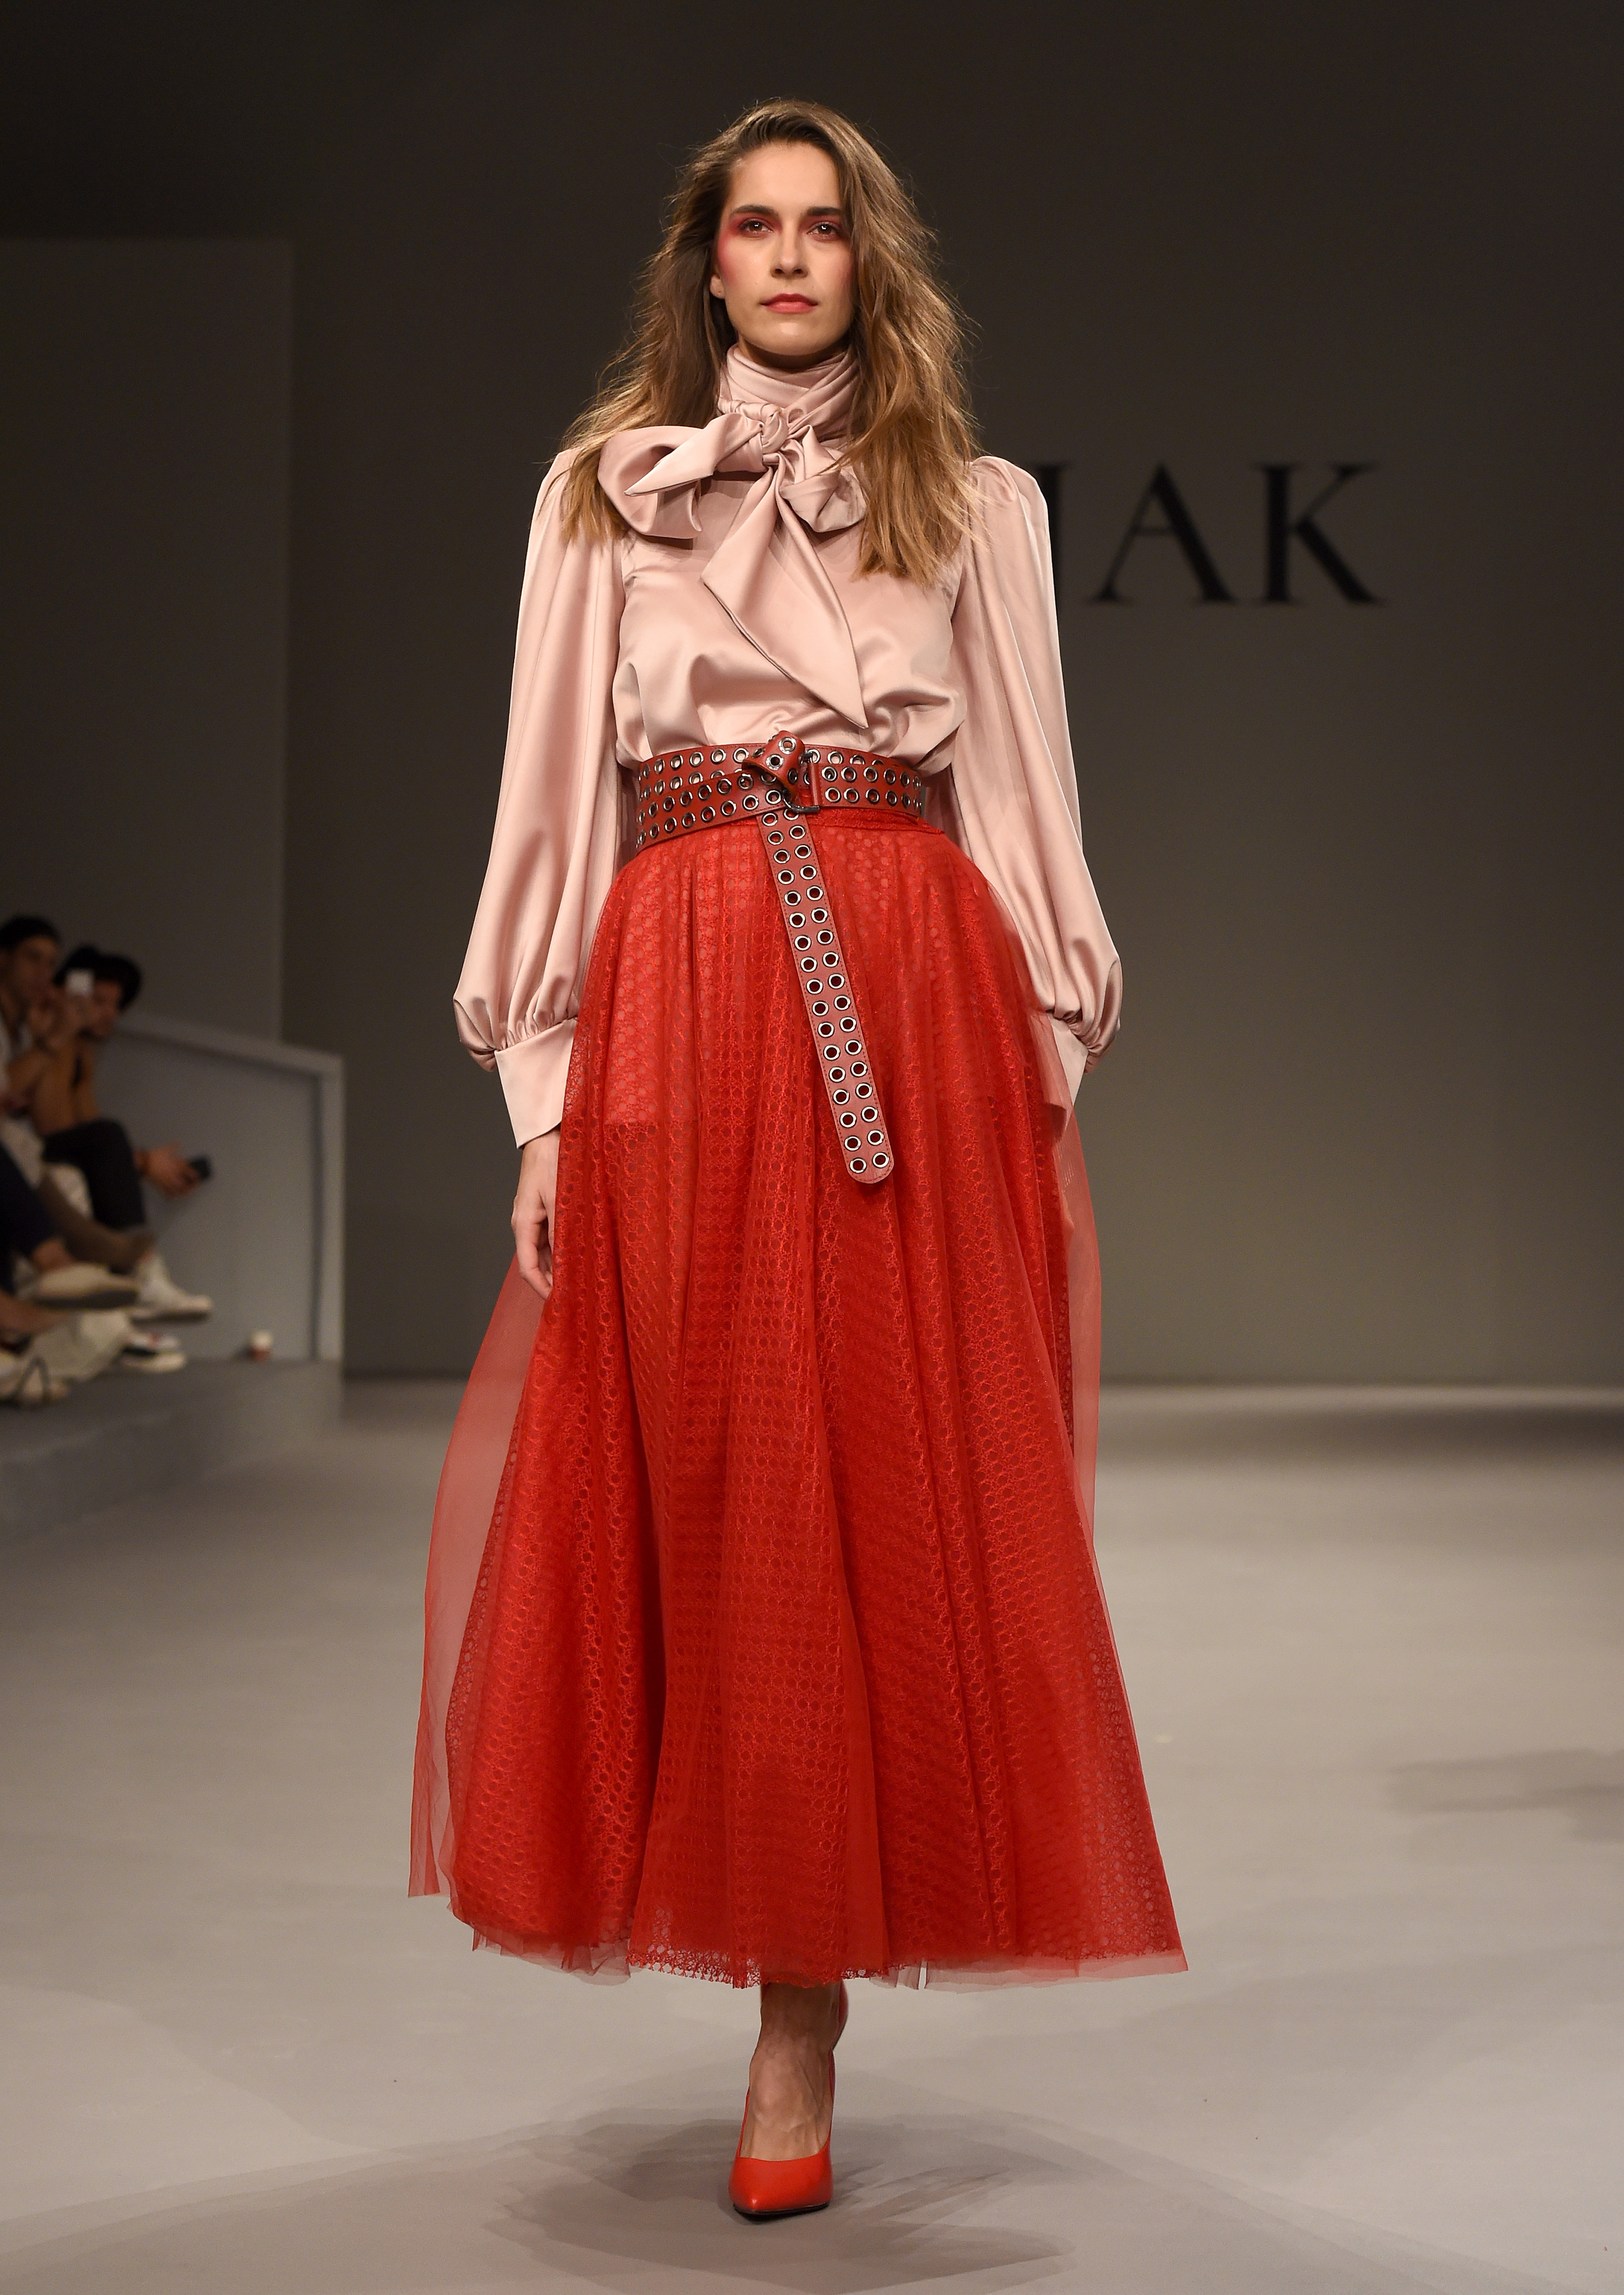 Mohanad Kojak - Fashion Forward Dubai Season 10, October 2017 - Photography by Getty Images